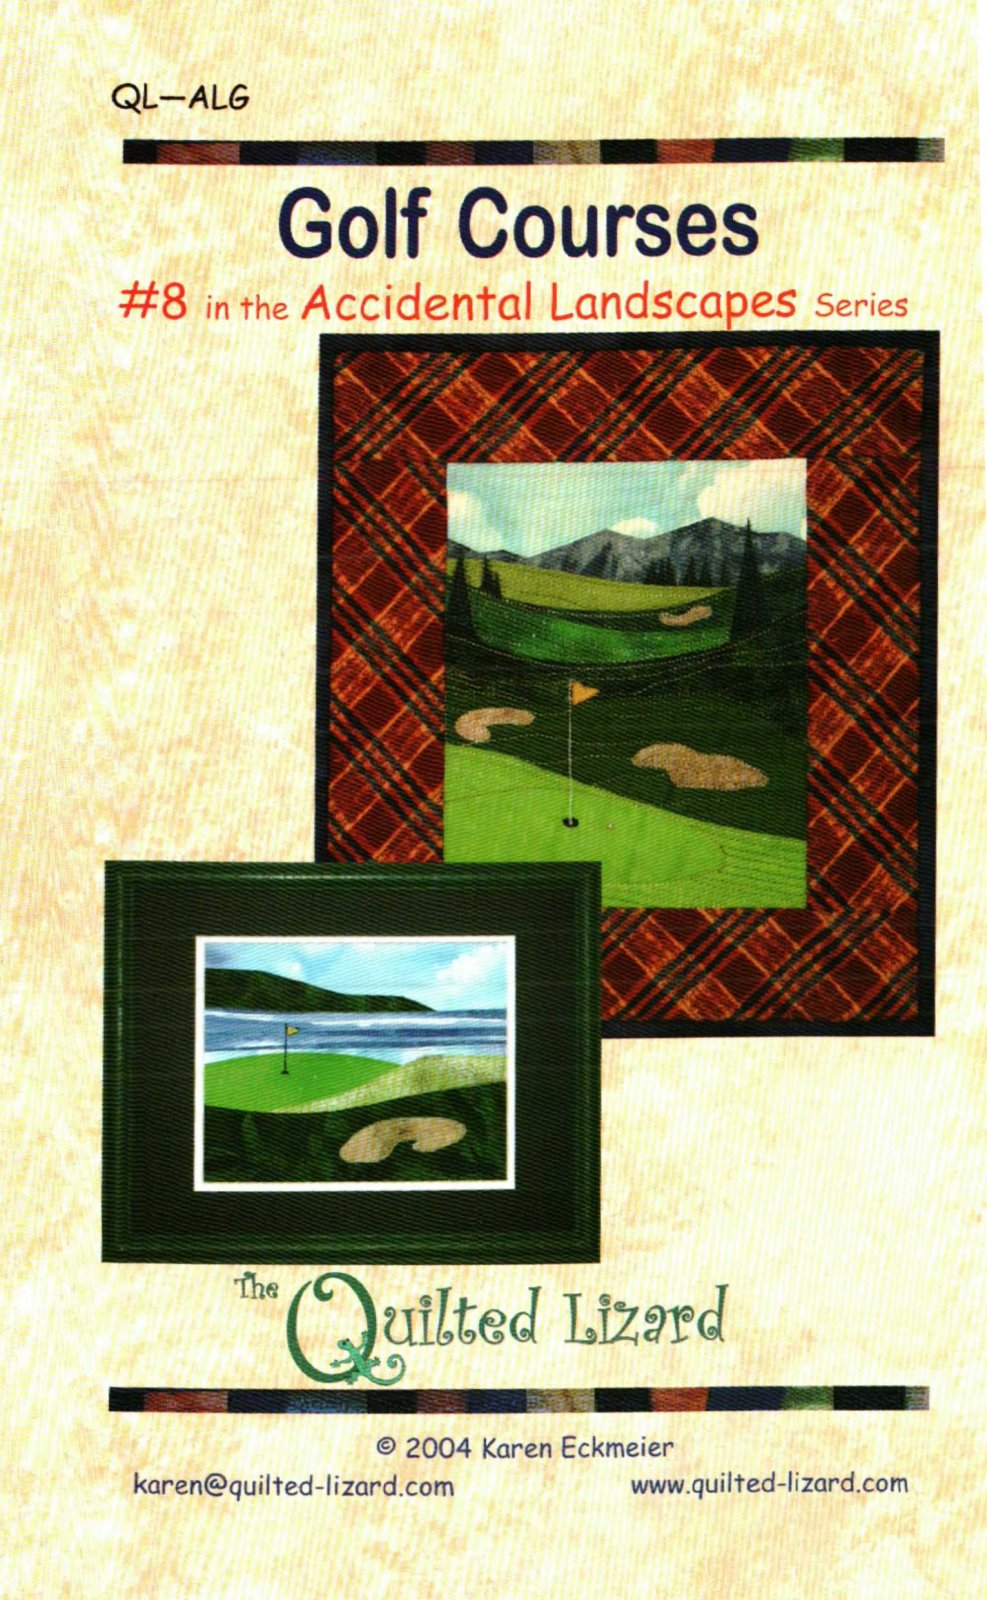 J QUILTED LIZARD GOLF COURSE 117-P